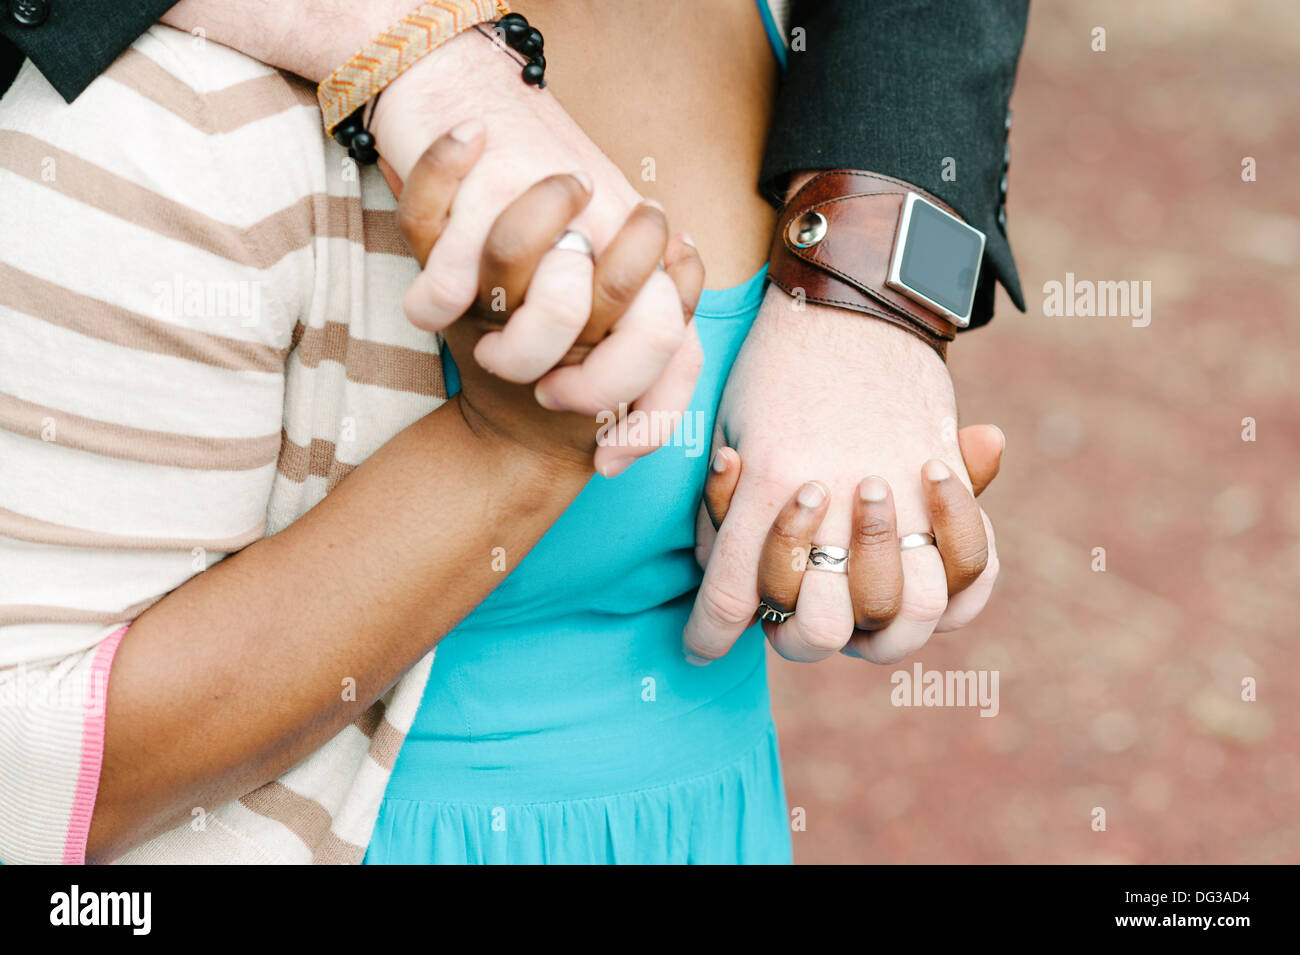 Interracial giovane Holding Hands, Close Up Immagini Stock